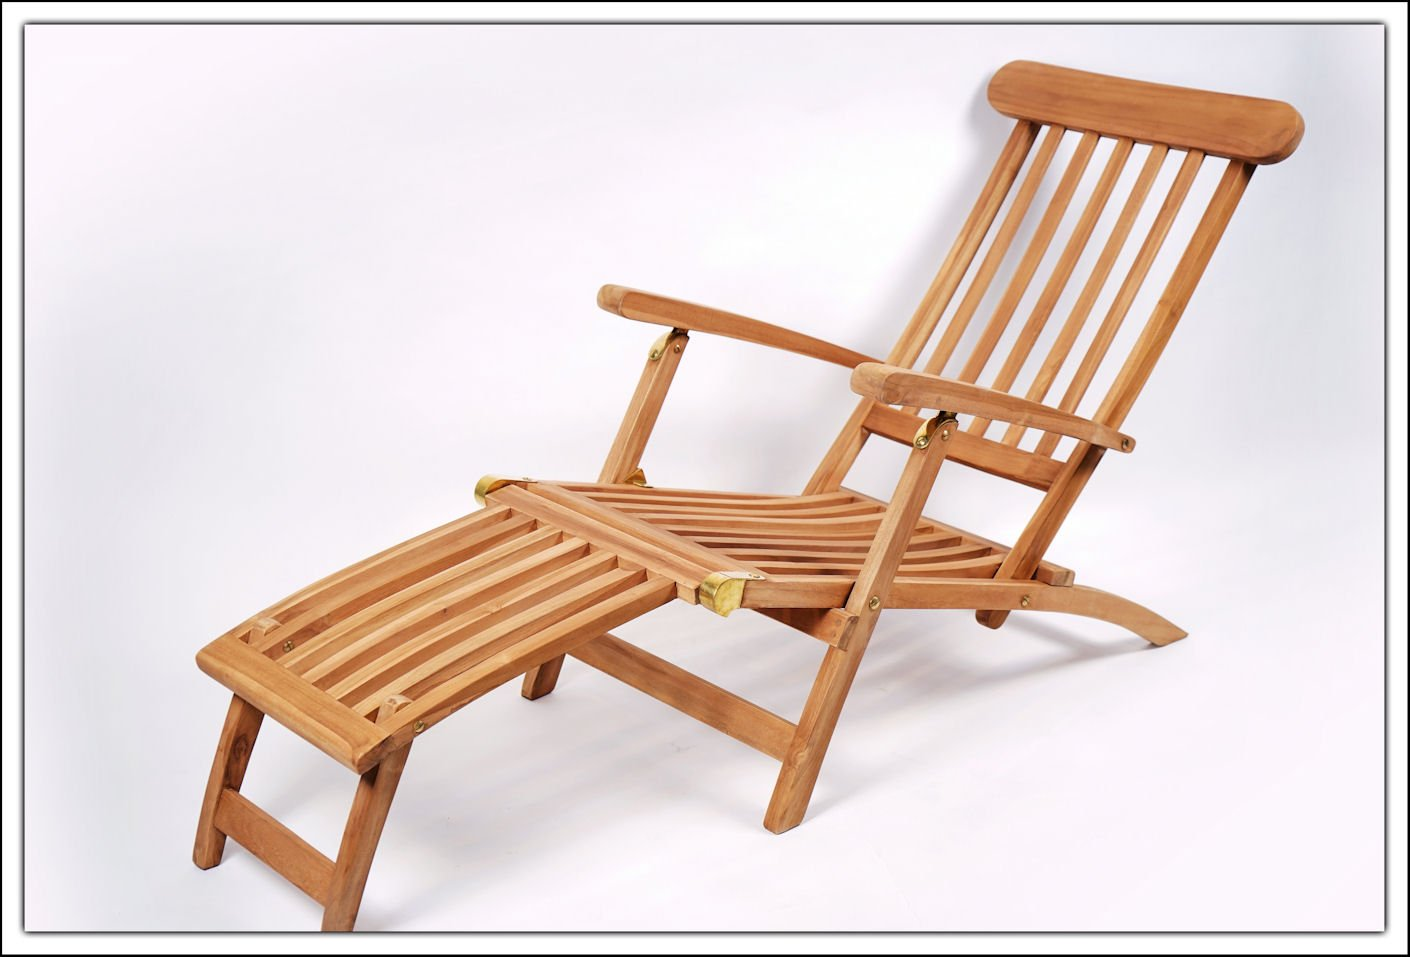 massiver teak deckchair mit verstellbarer r ckenlehne. Black Bedroom Furniture Sets. Home Design Ideas